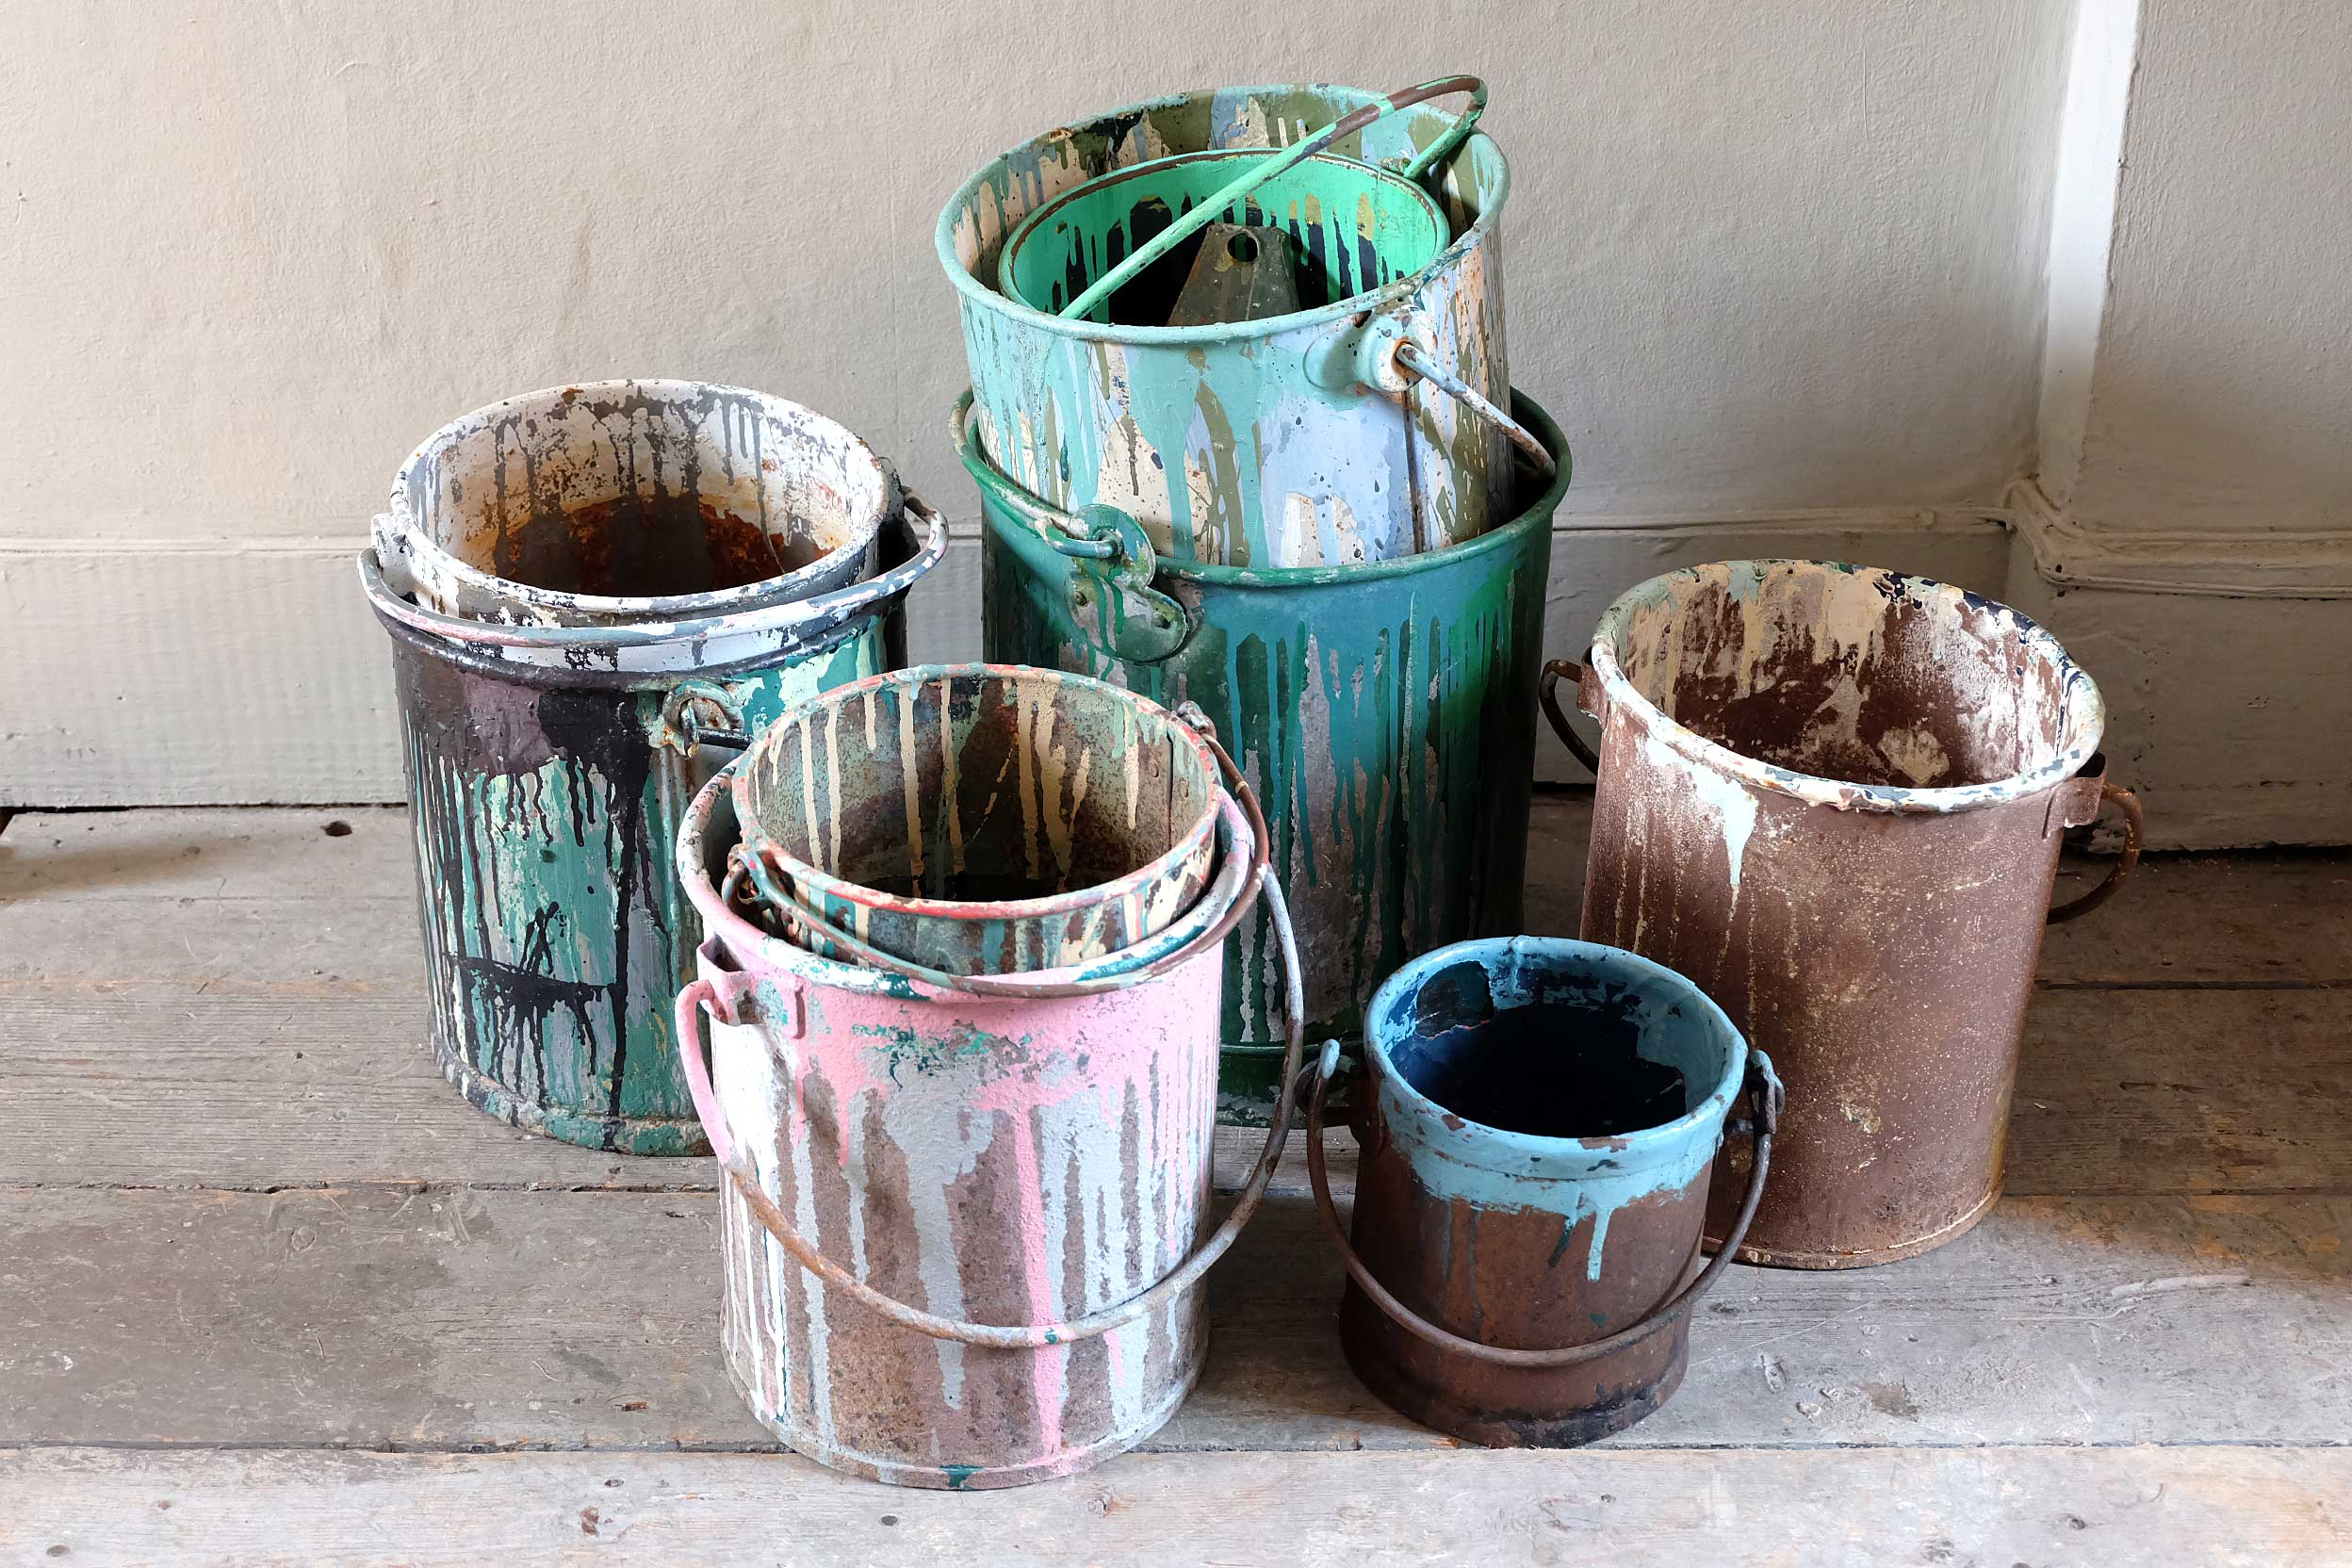 Vintage Paint Buckets › Puckhaber Decorative Antiques › specialists ...